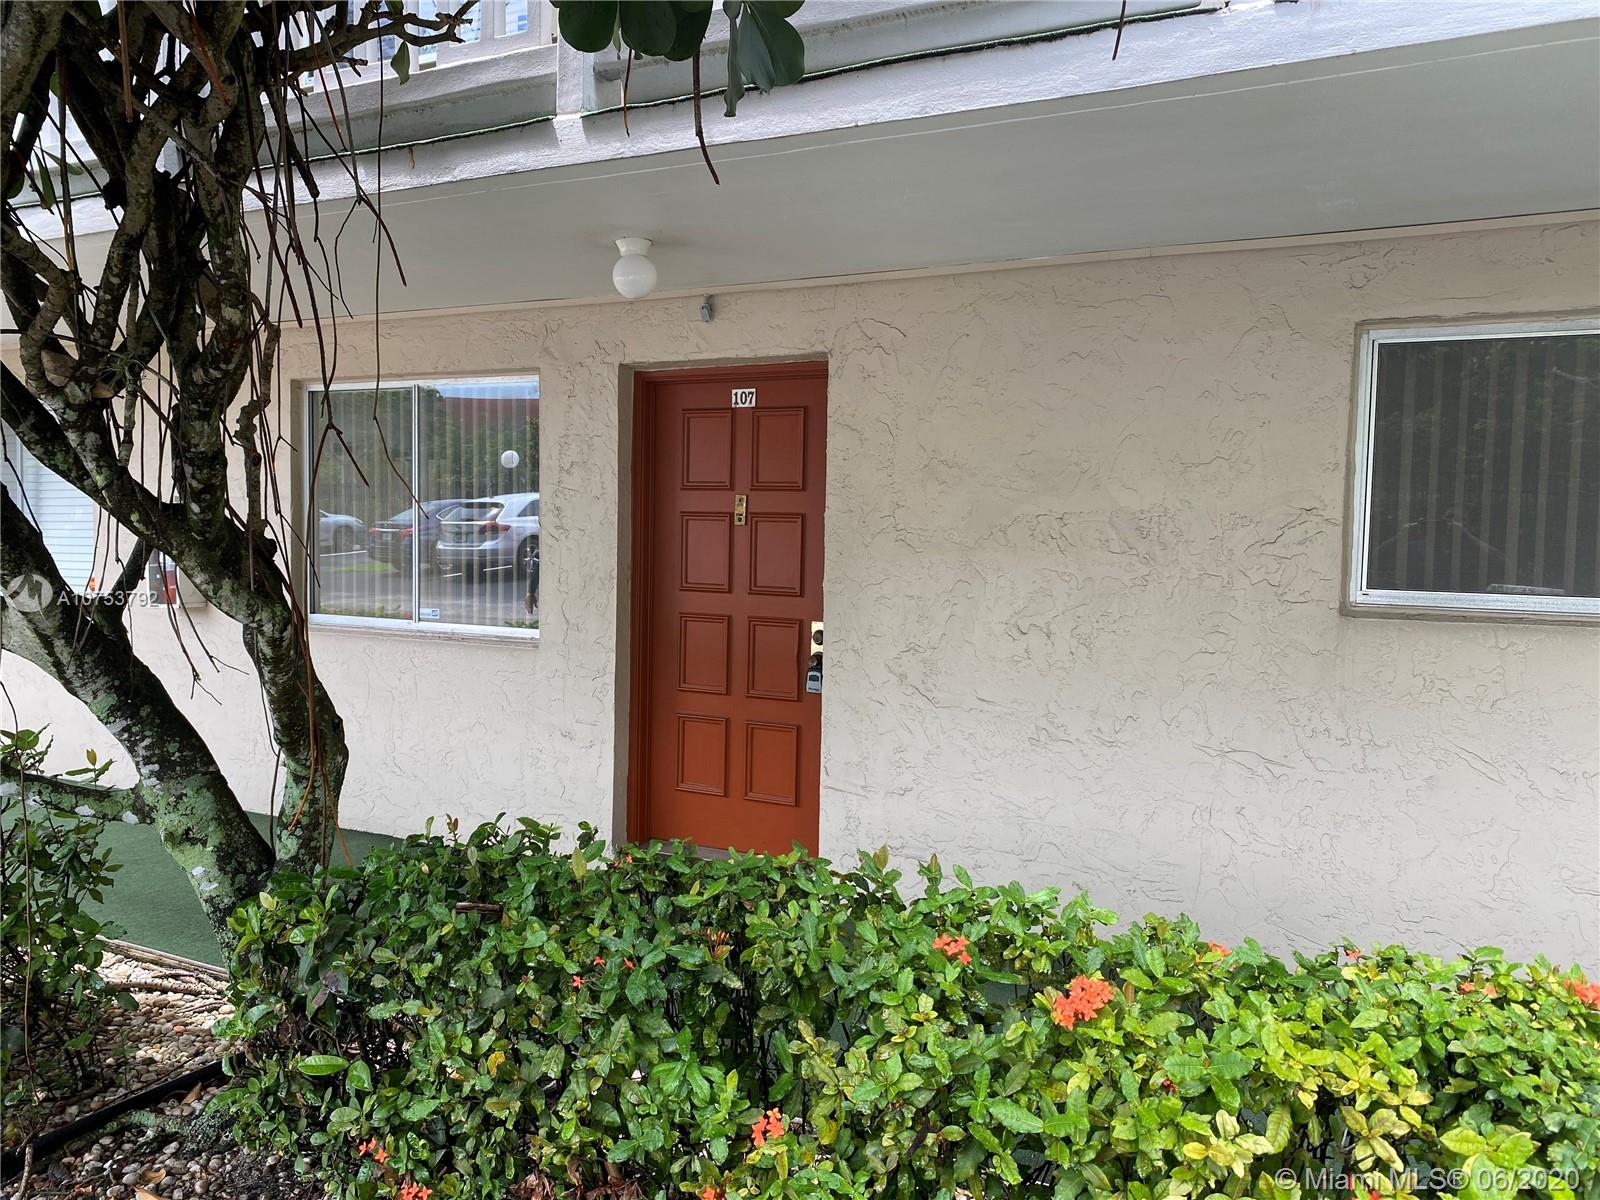 """Convenient 2/2 first floor unit in gated Las Vistas In Inverrary. Foyer entry. Eat-in kitchen. Pass thru to living/ dining. Split floor plan. Spacious master. Walk-in closet both beds. Patio utility. Hurricane impact sliders. Tranquil lake and golf views. Association states HOPA. Minimum 20% down payment. 6 months maintenance held in escrow for 18 months. No pets. No lease first year. Corporate buyers ok. Property is being sold """"As Is"""" and subject to HUD guidelines 24 CFR 206.125. PLEASE CALL CO-AGENT LISSETTE JIMENEZ FOR SHOWING INSTRUCTIONS"""